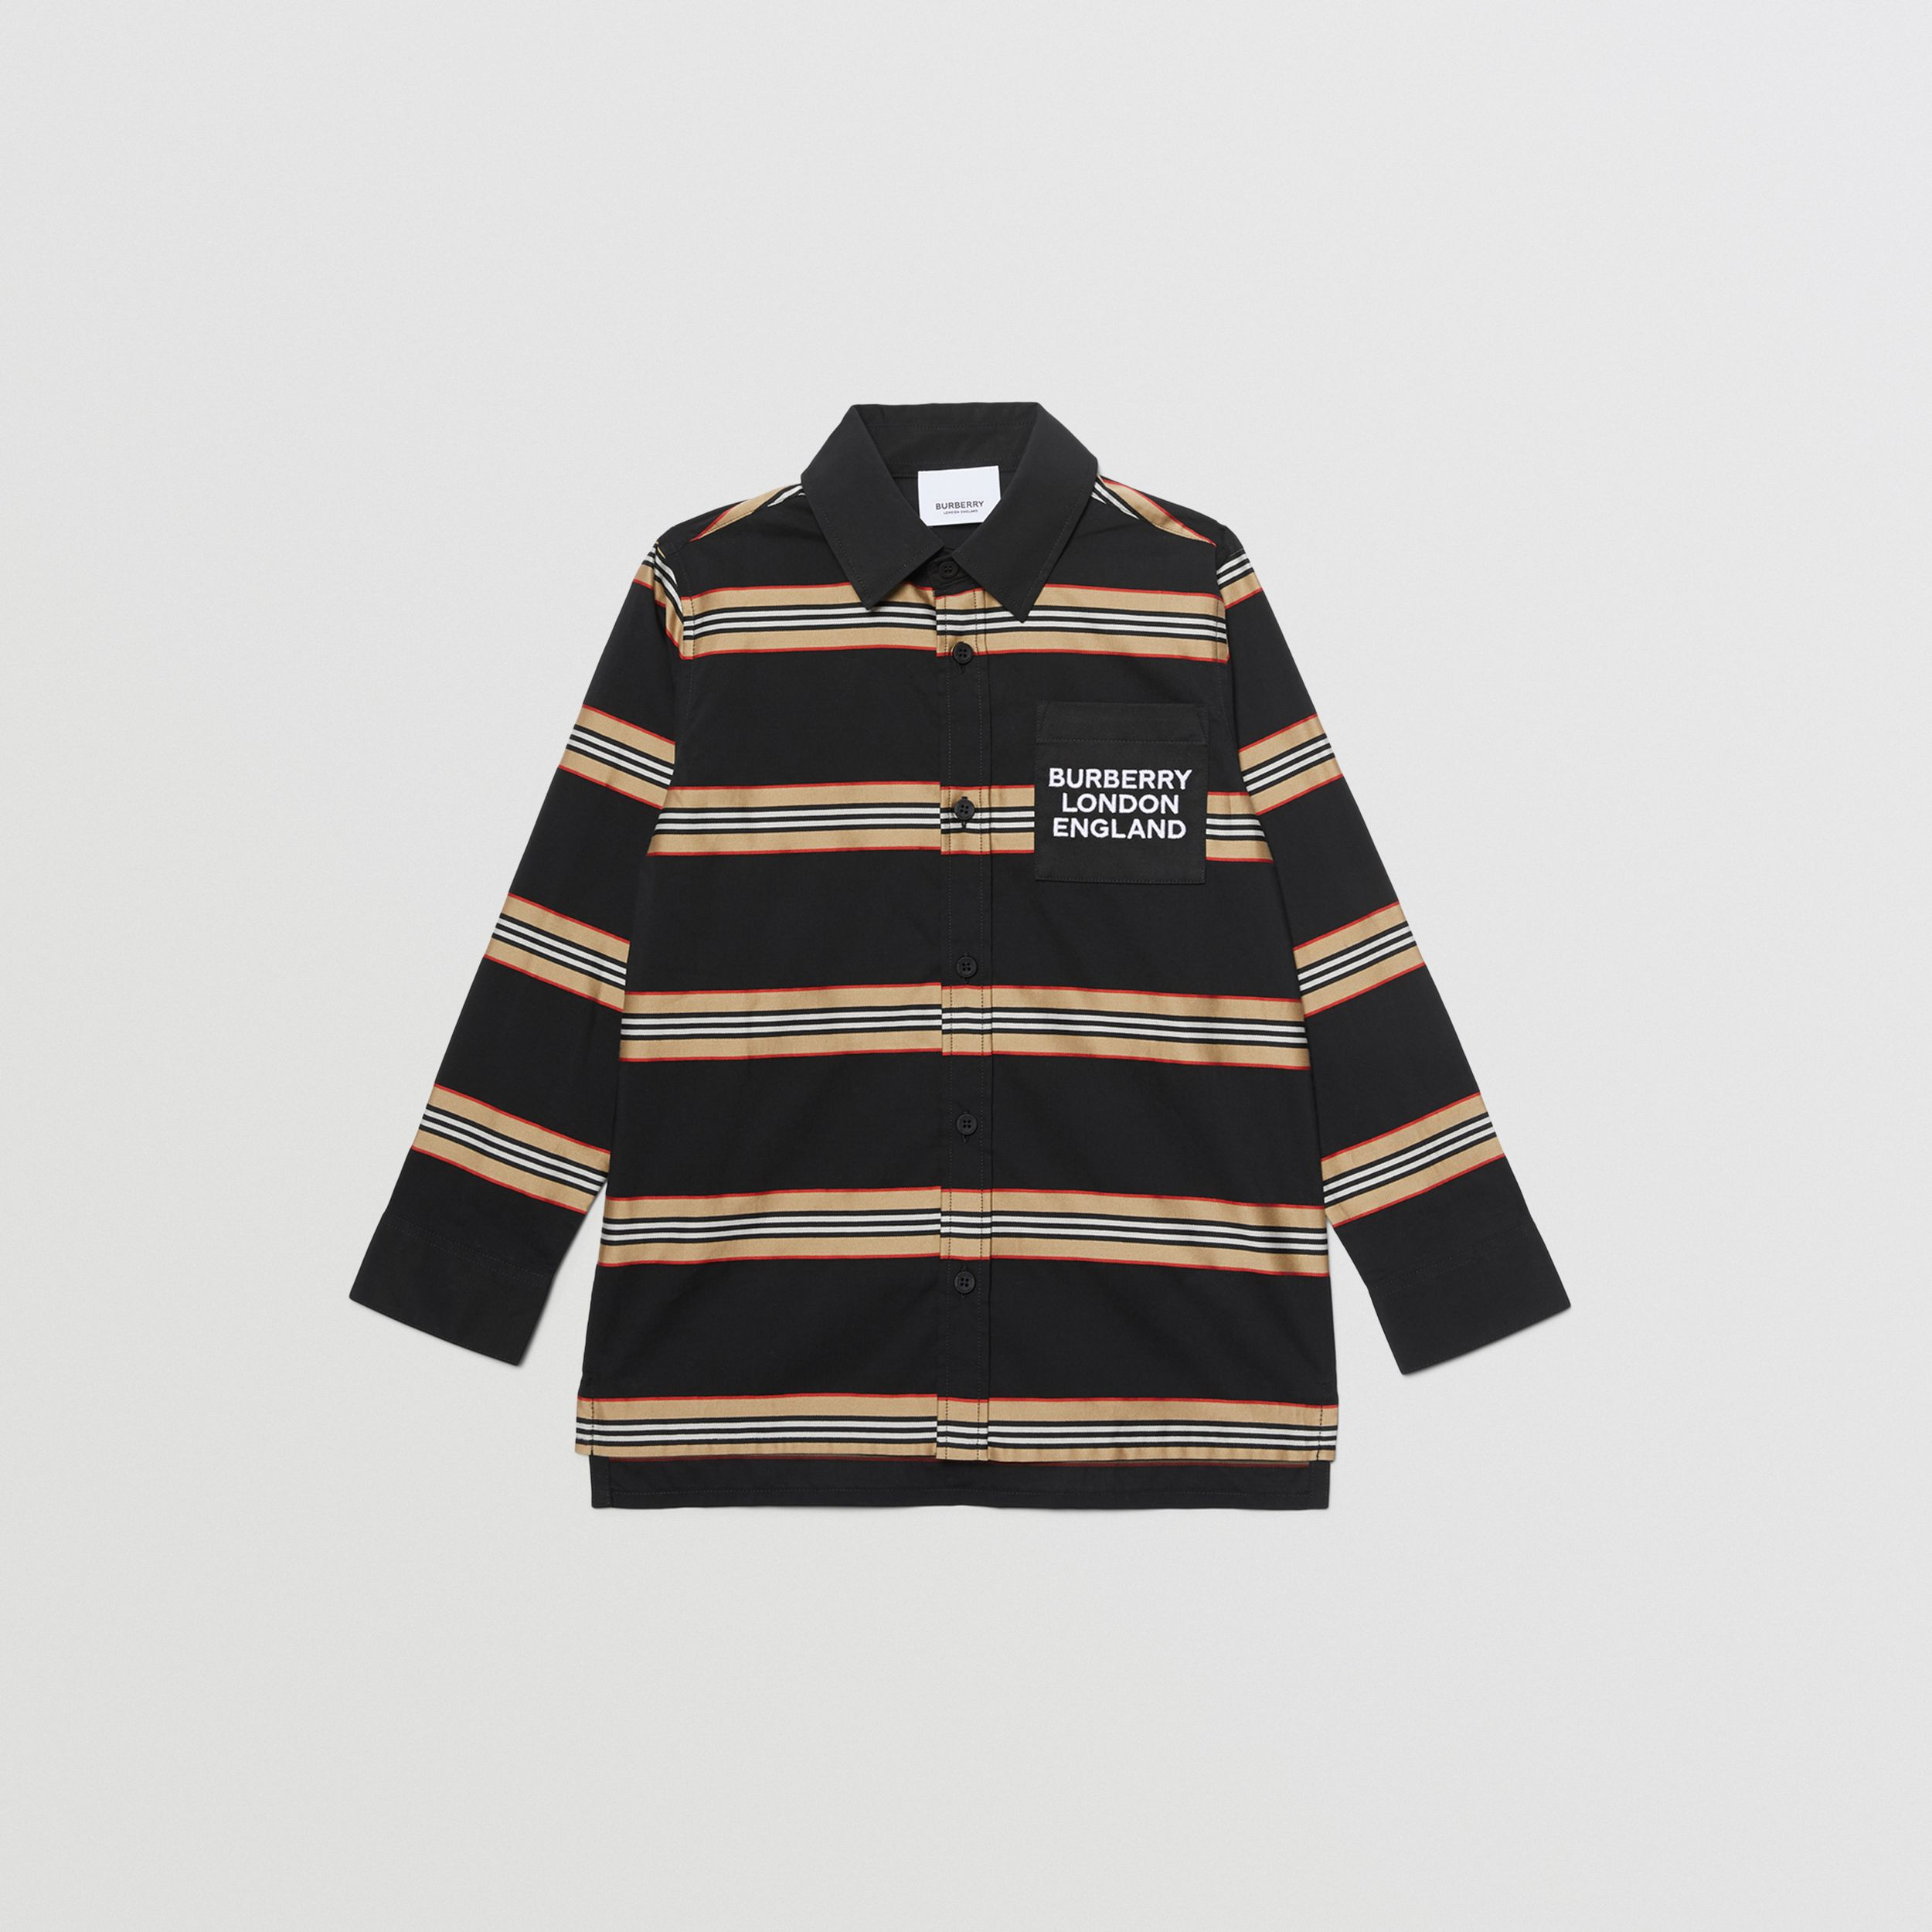 Embroidered Logo Icon Stripe Cotton Shirt in Black | Burberry - 1